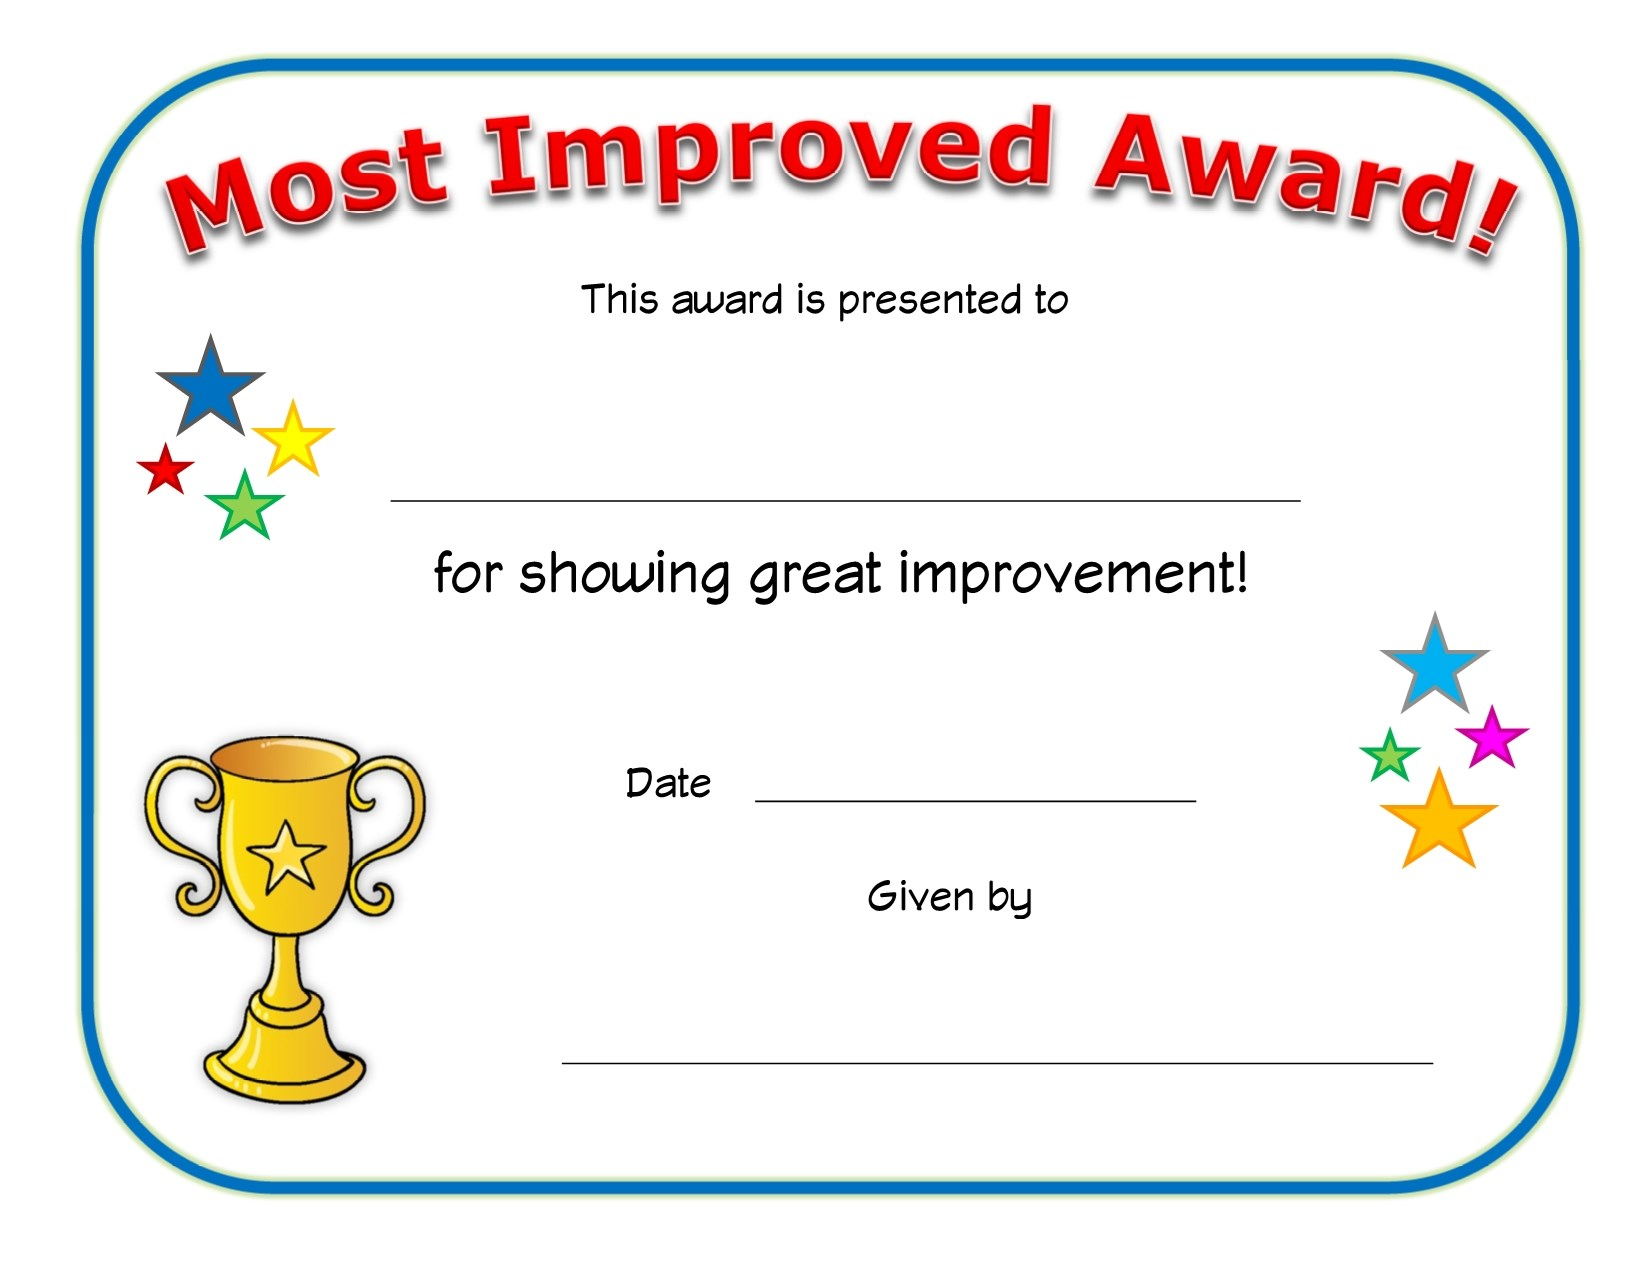 most improved award certificate  Most Improved Award Certificate | All Kids Network